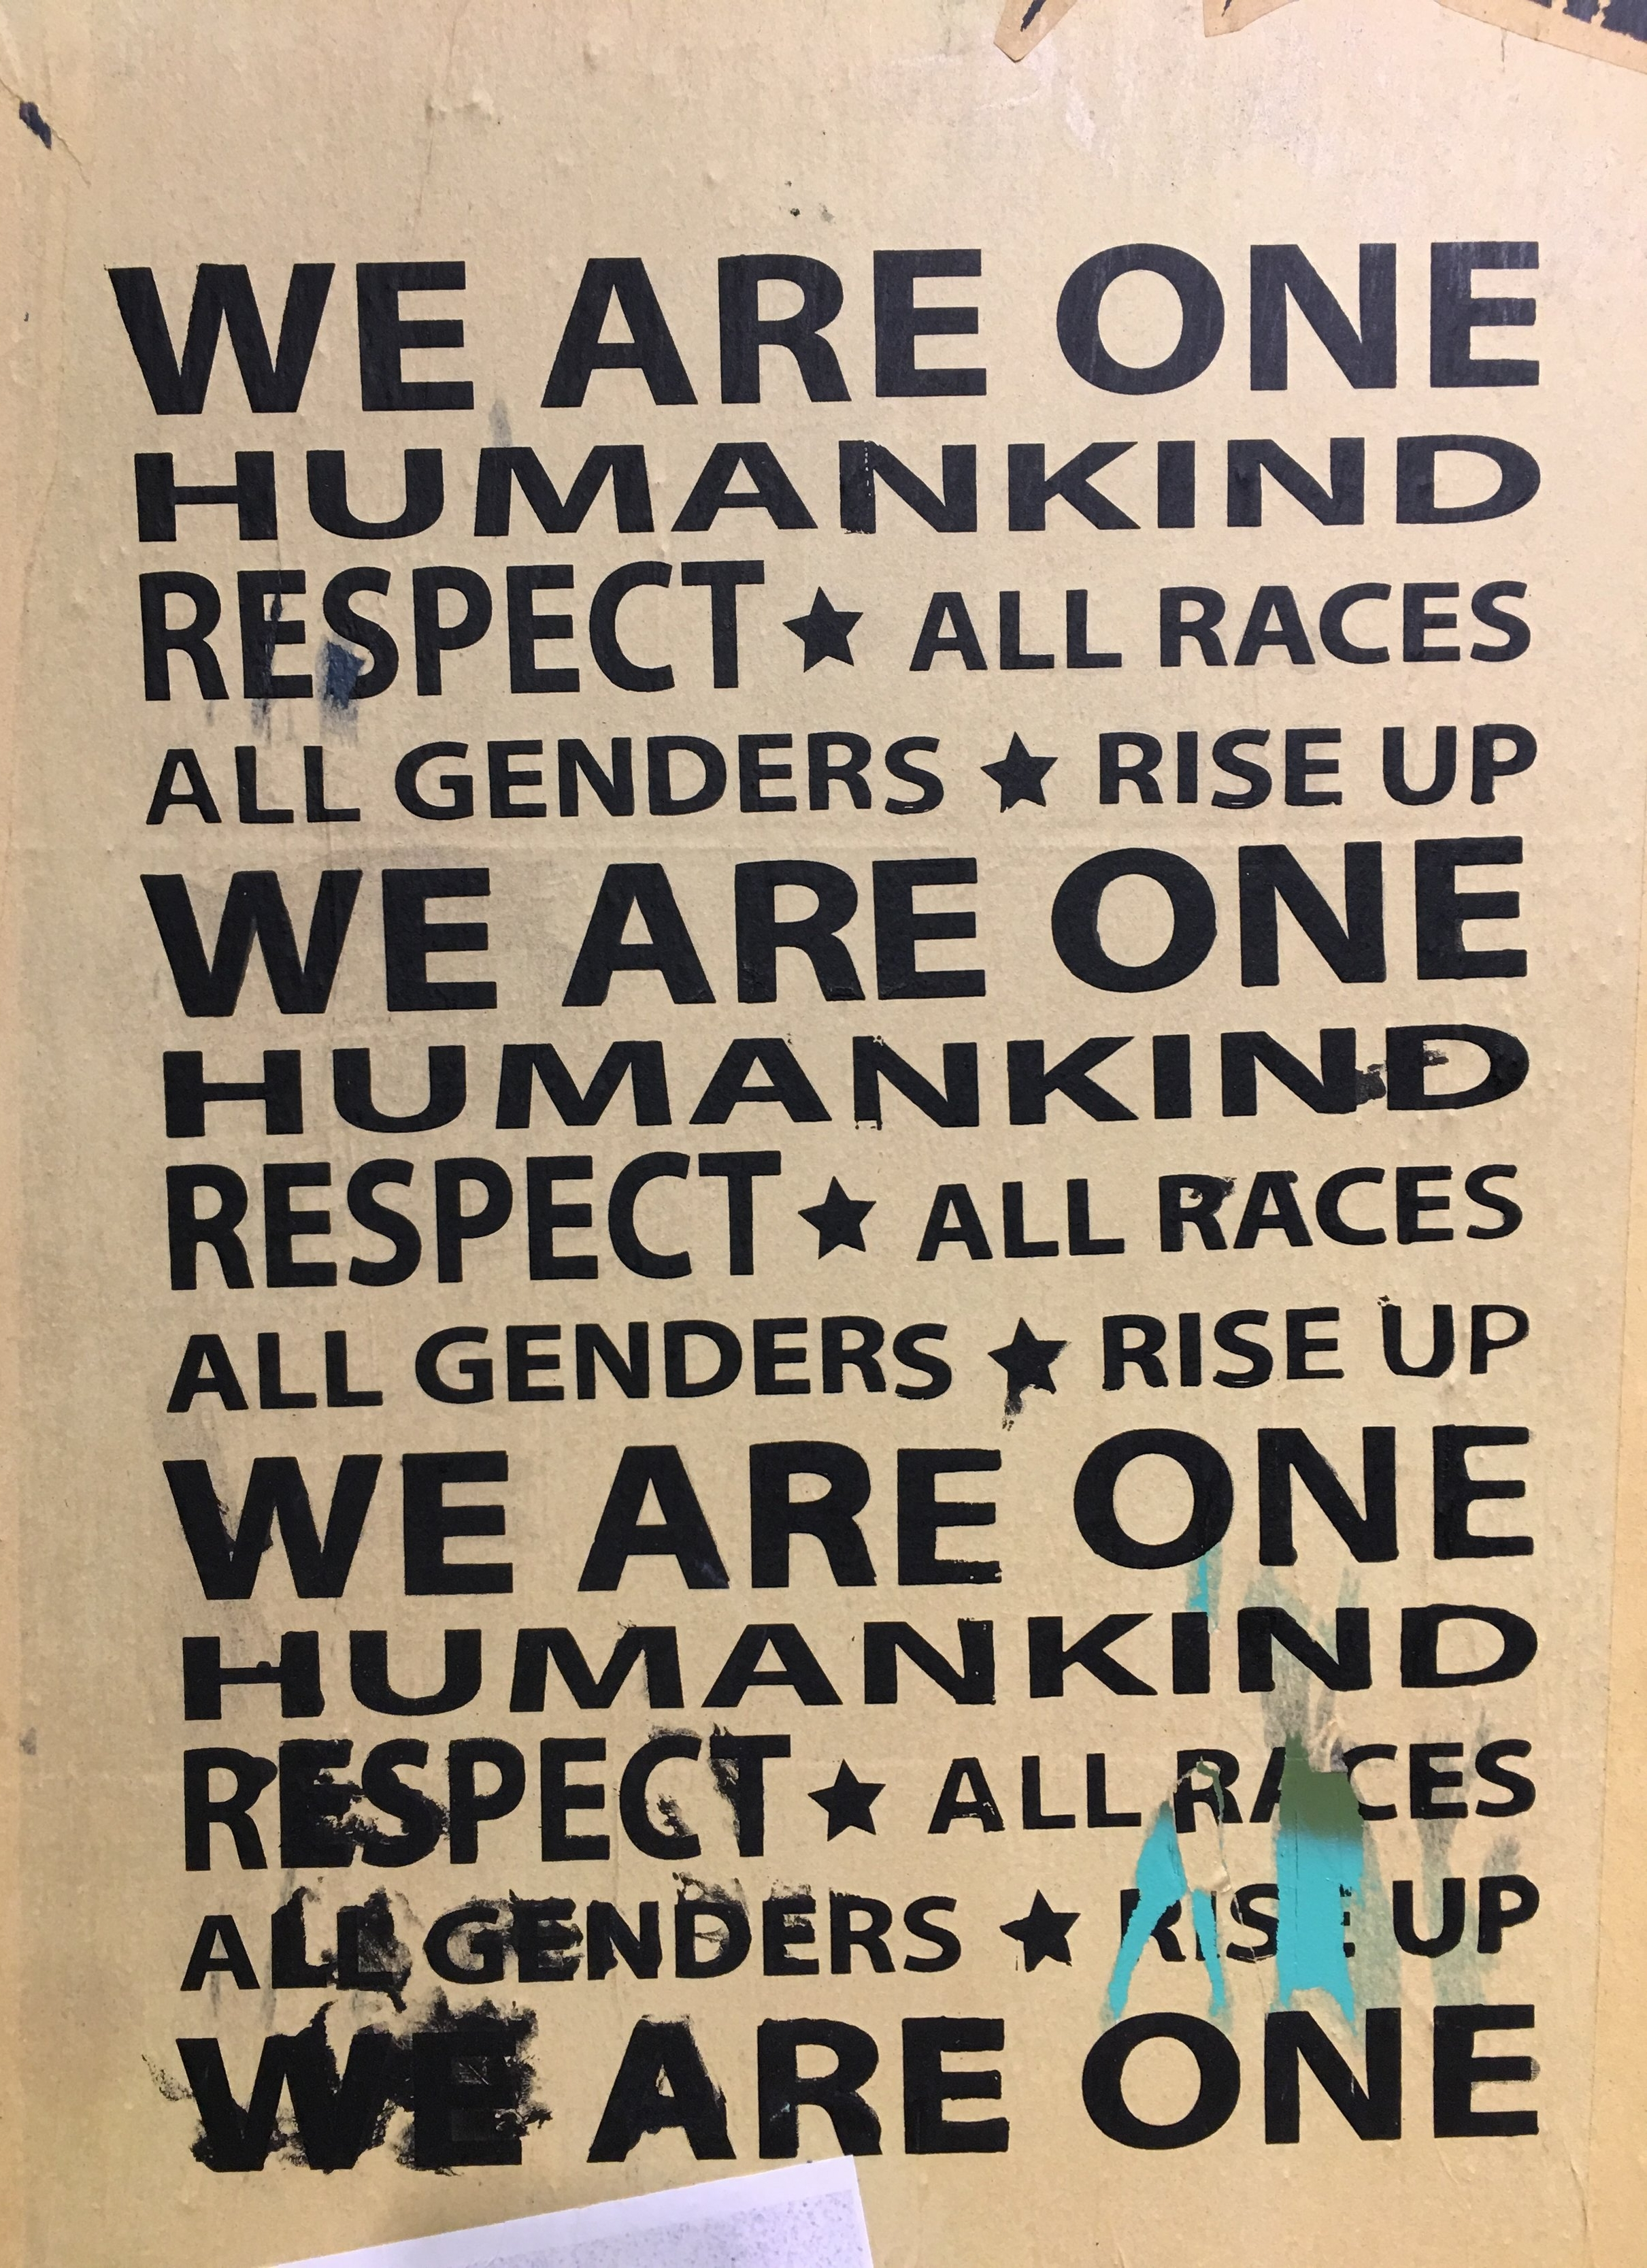 WE ARE ONE! RISE UP! RESPECT!